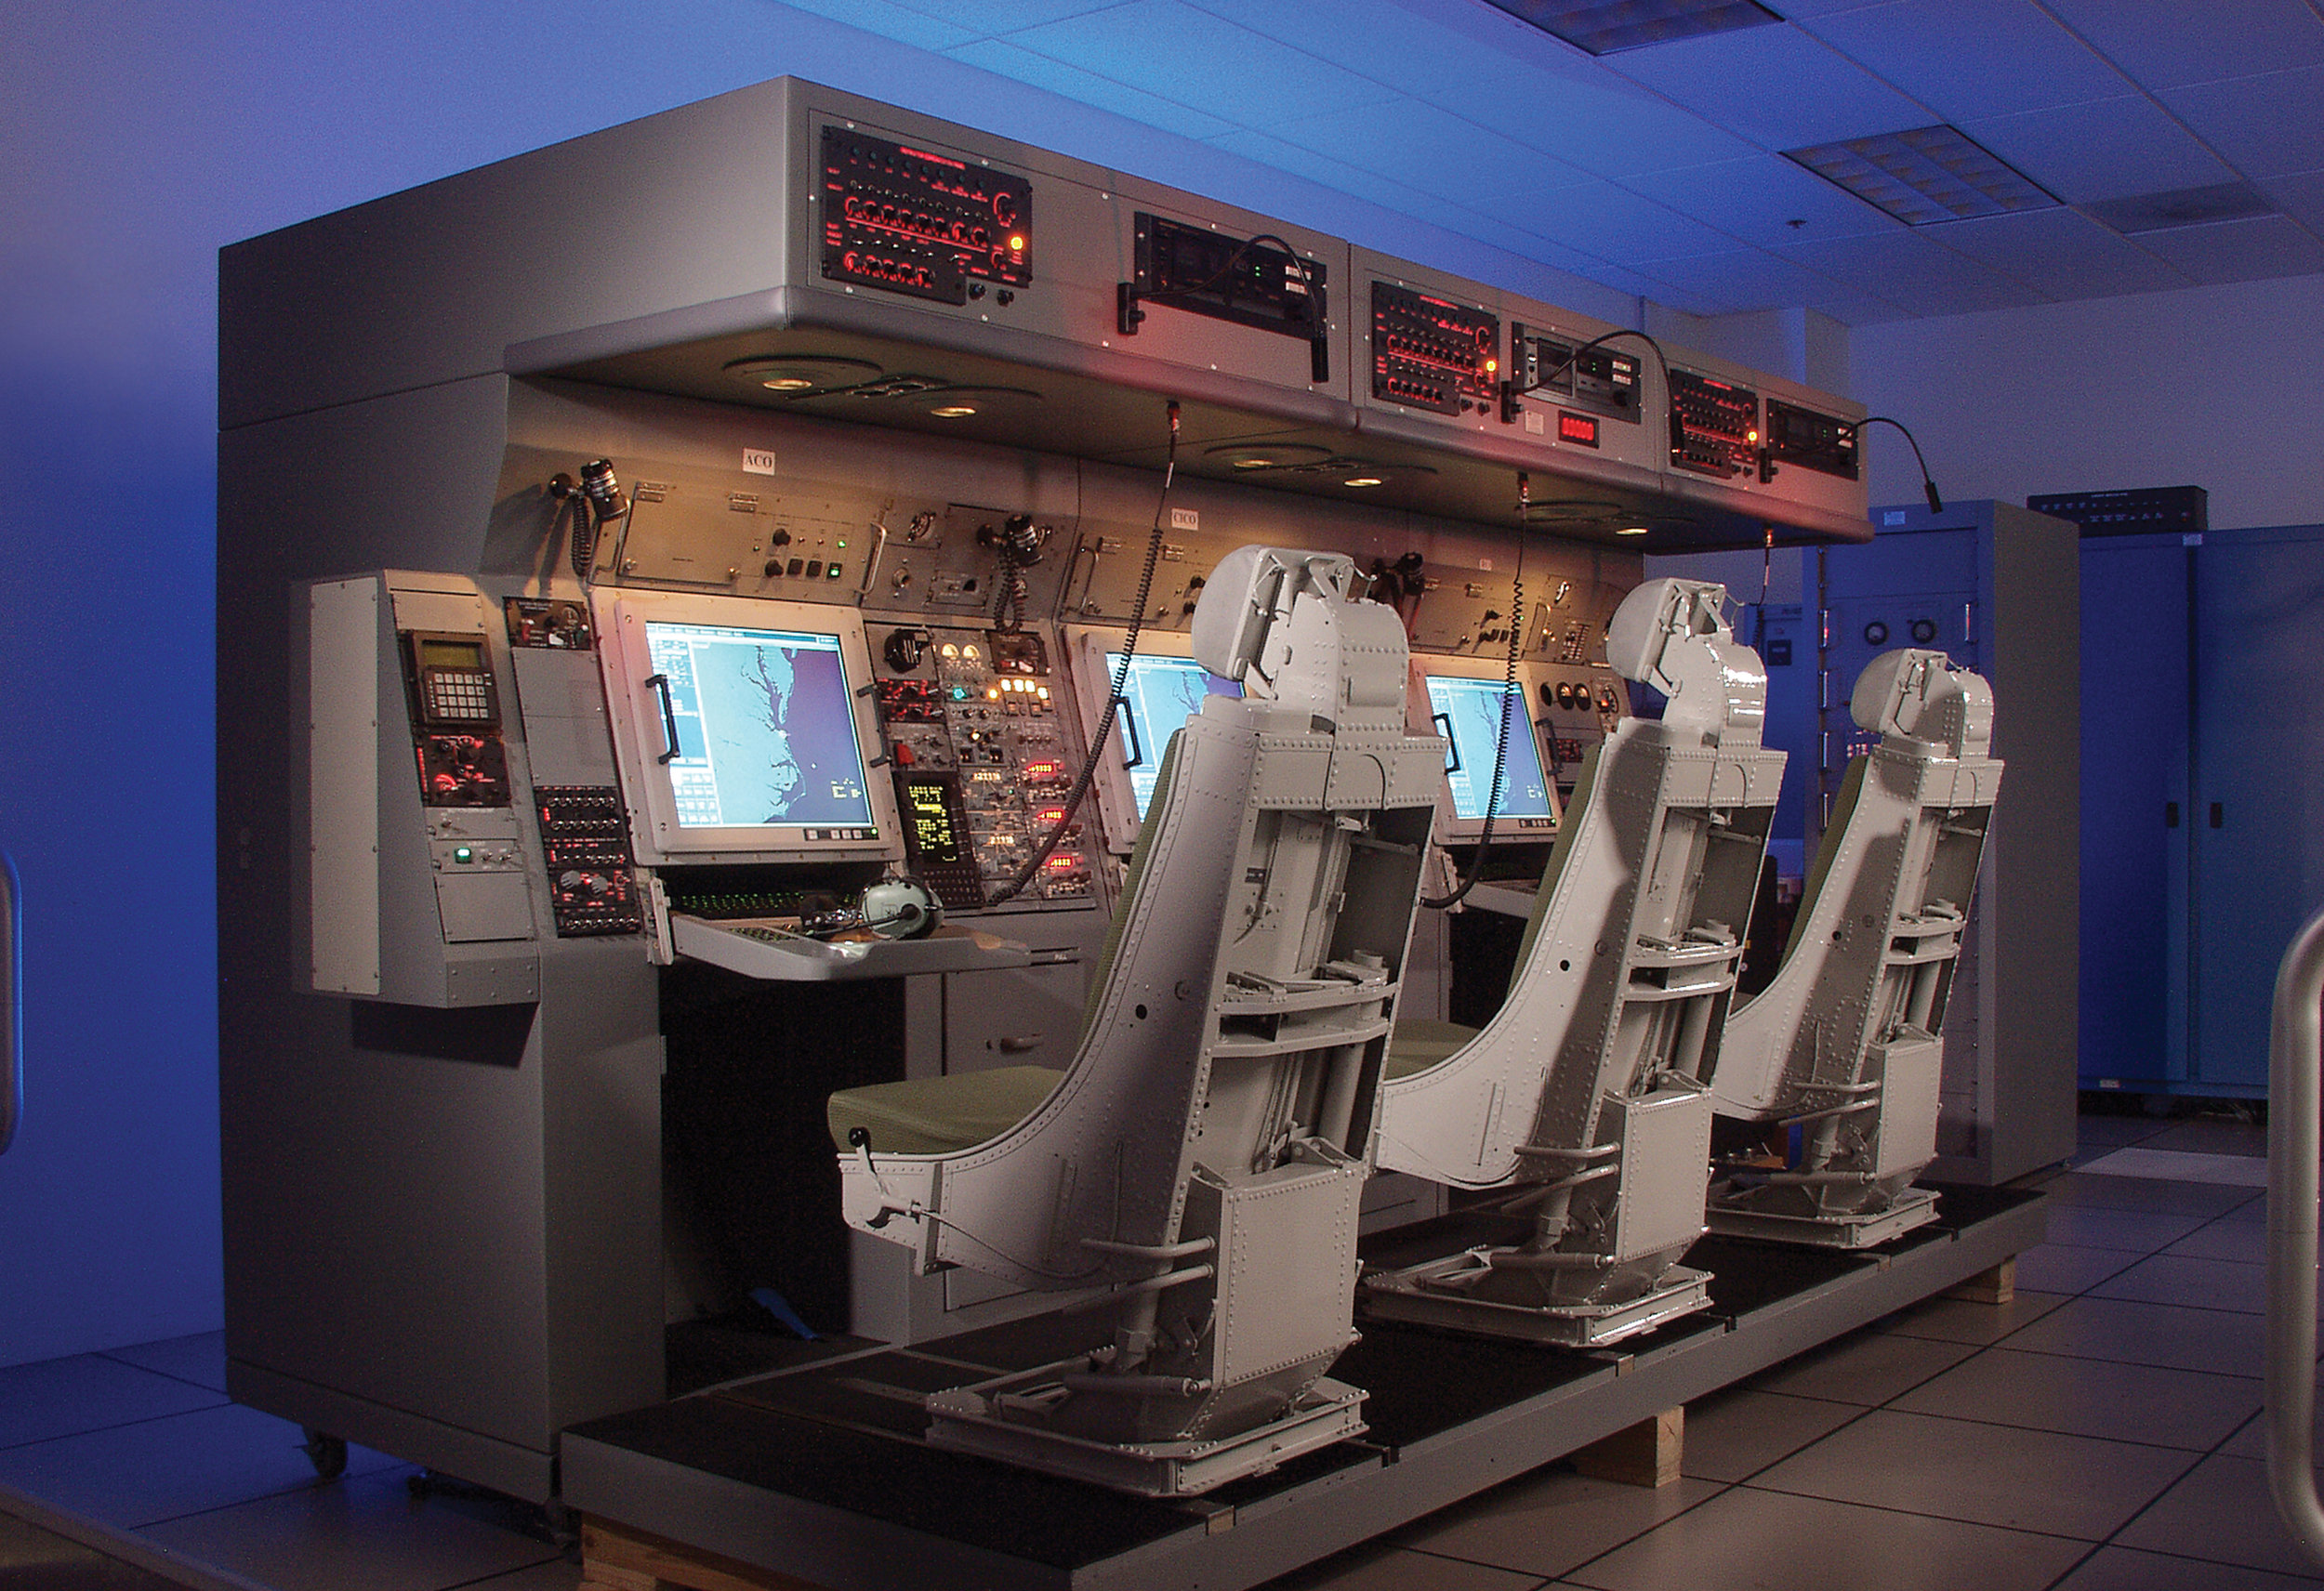 Rockwell Collins has been selected by the U.S. Navy to provide an upgrade to the E-2D Advanced Hawkeye Integrated Training System (HITS, pictured here).